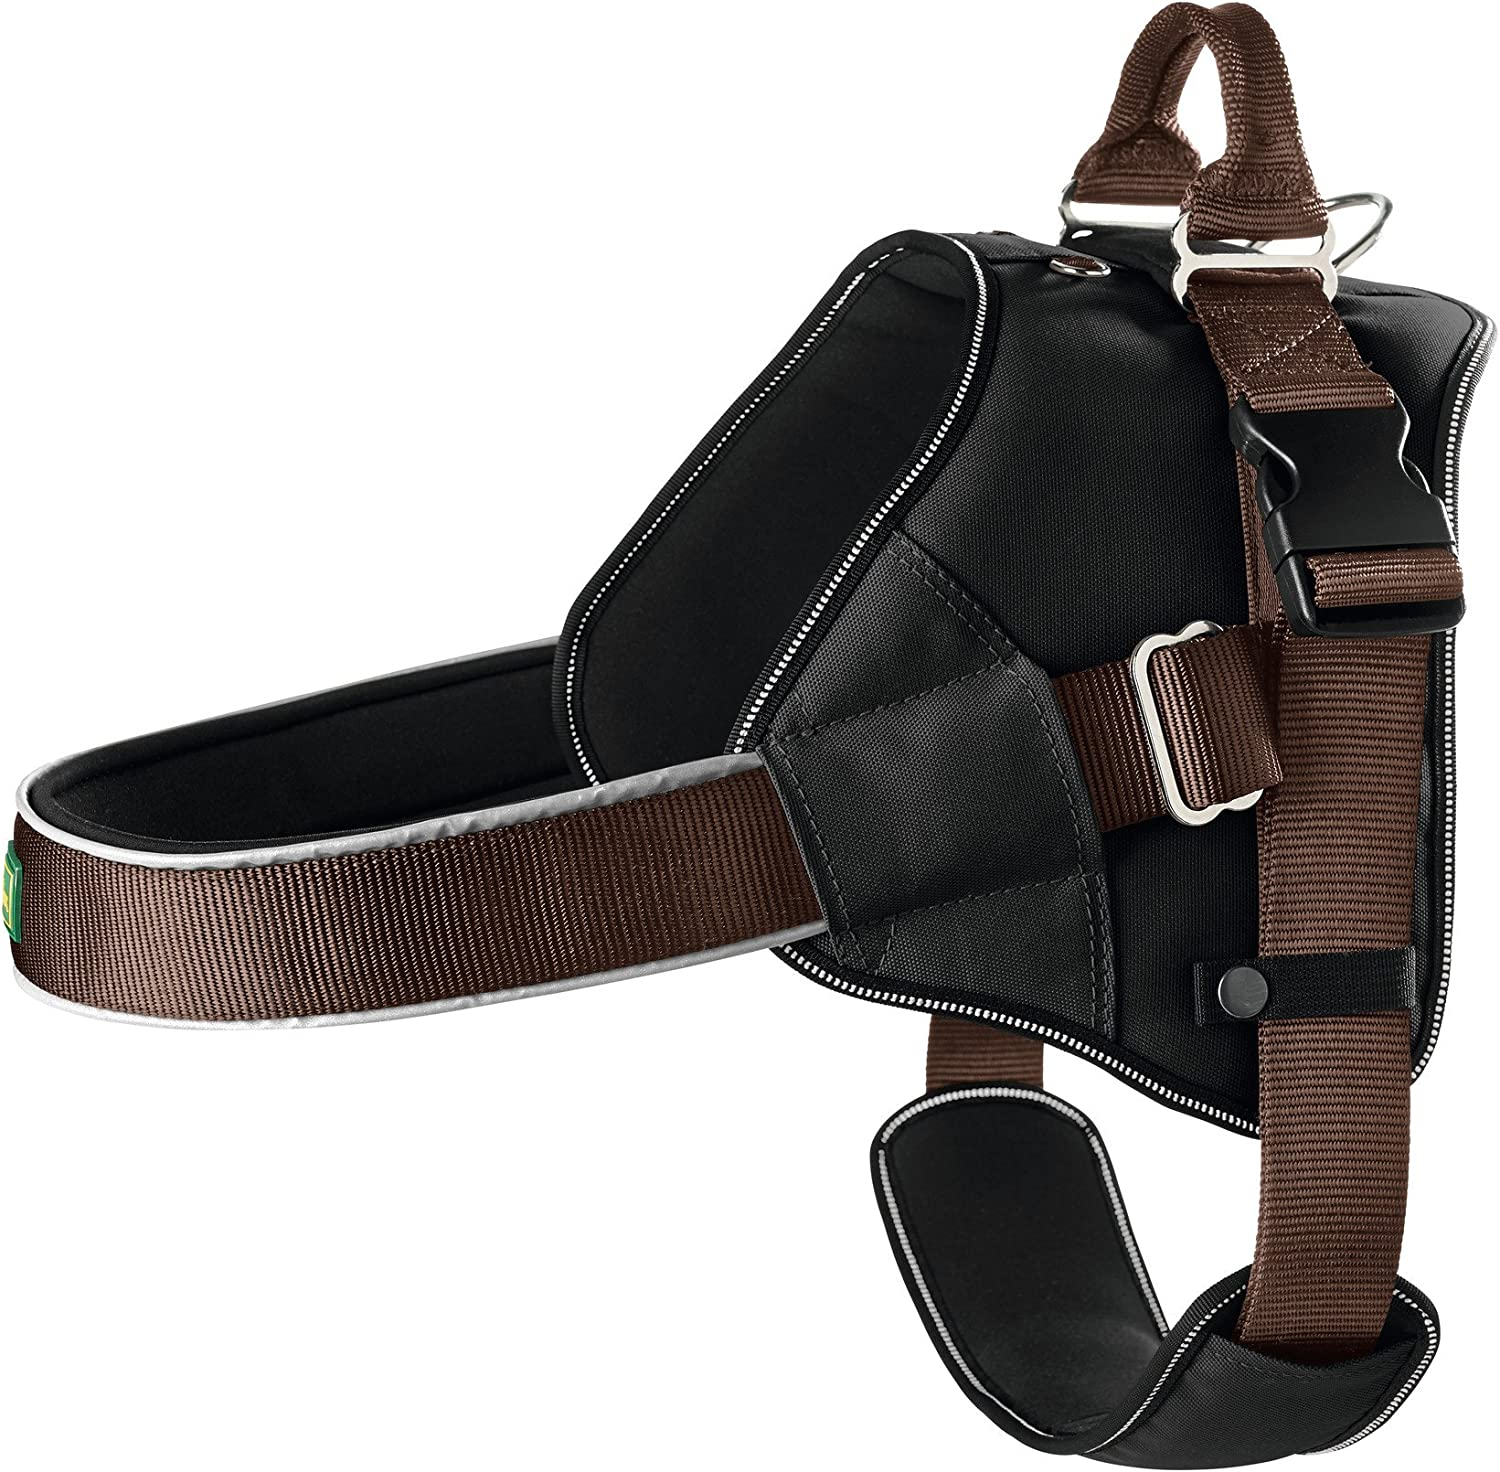 HUNTER Neopren Expert Nylon Harness, 55 x 80 cm, 25 mm, Small, Black Brown